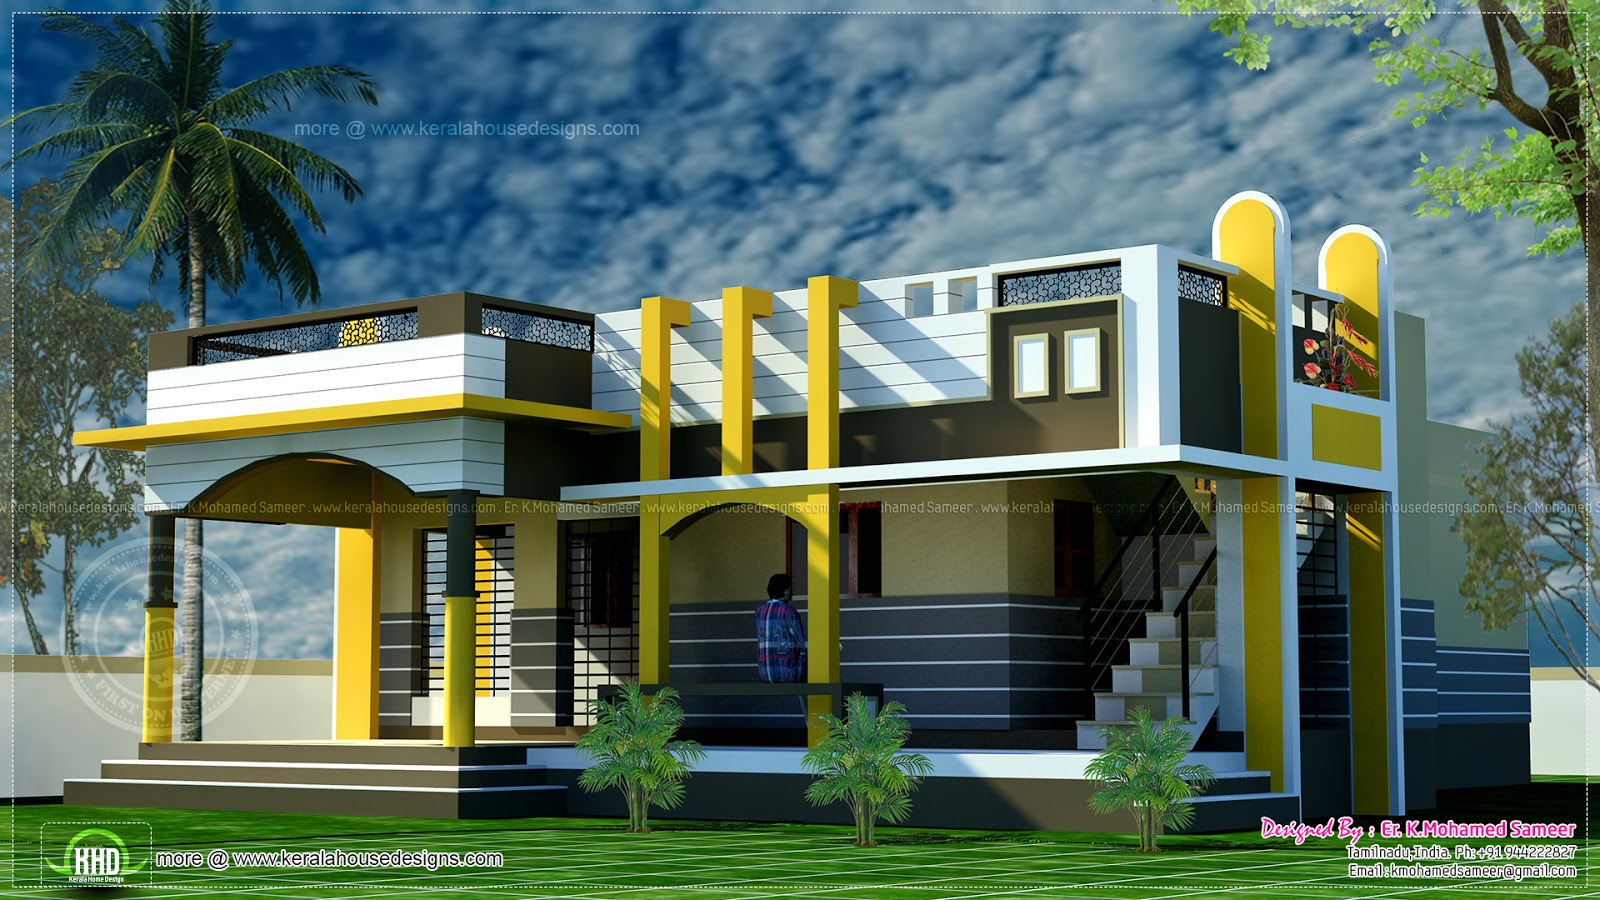 Small house design contemporary style kerala home design for Small home design ideas video